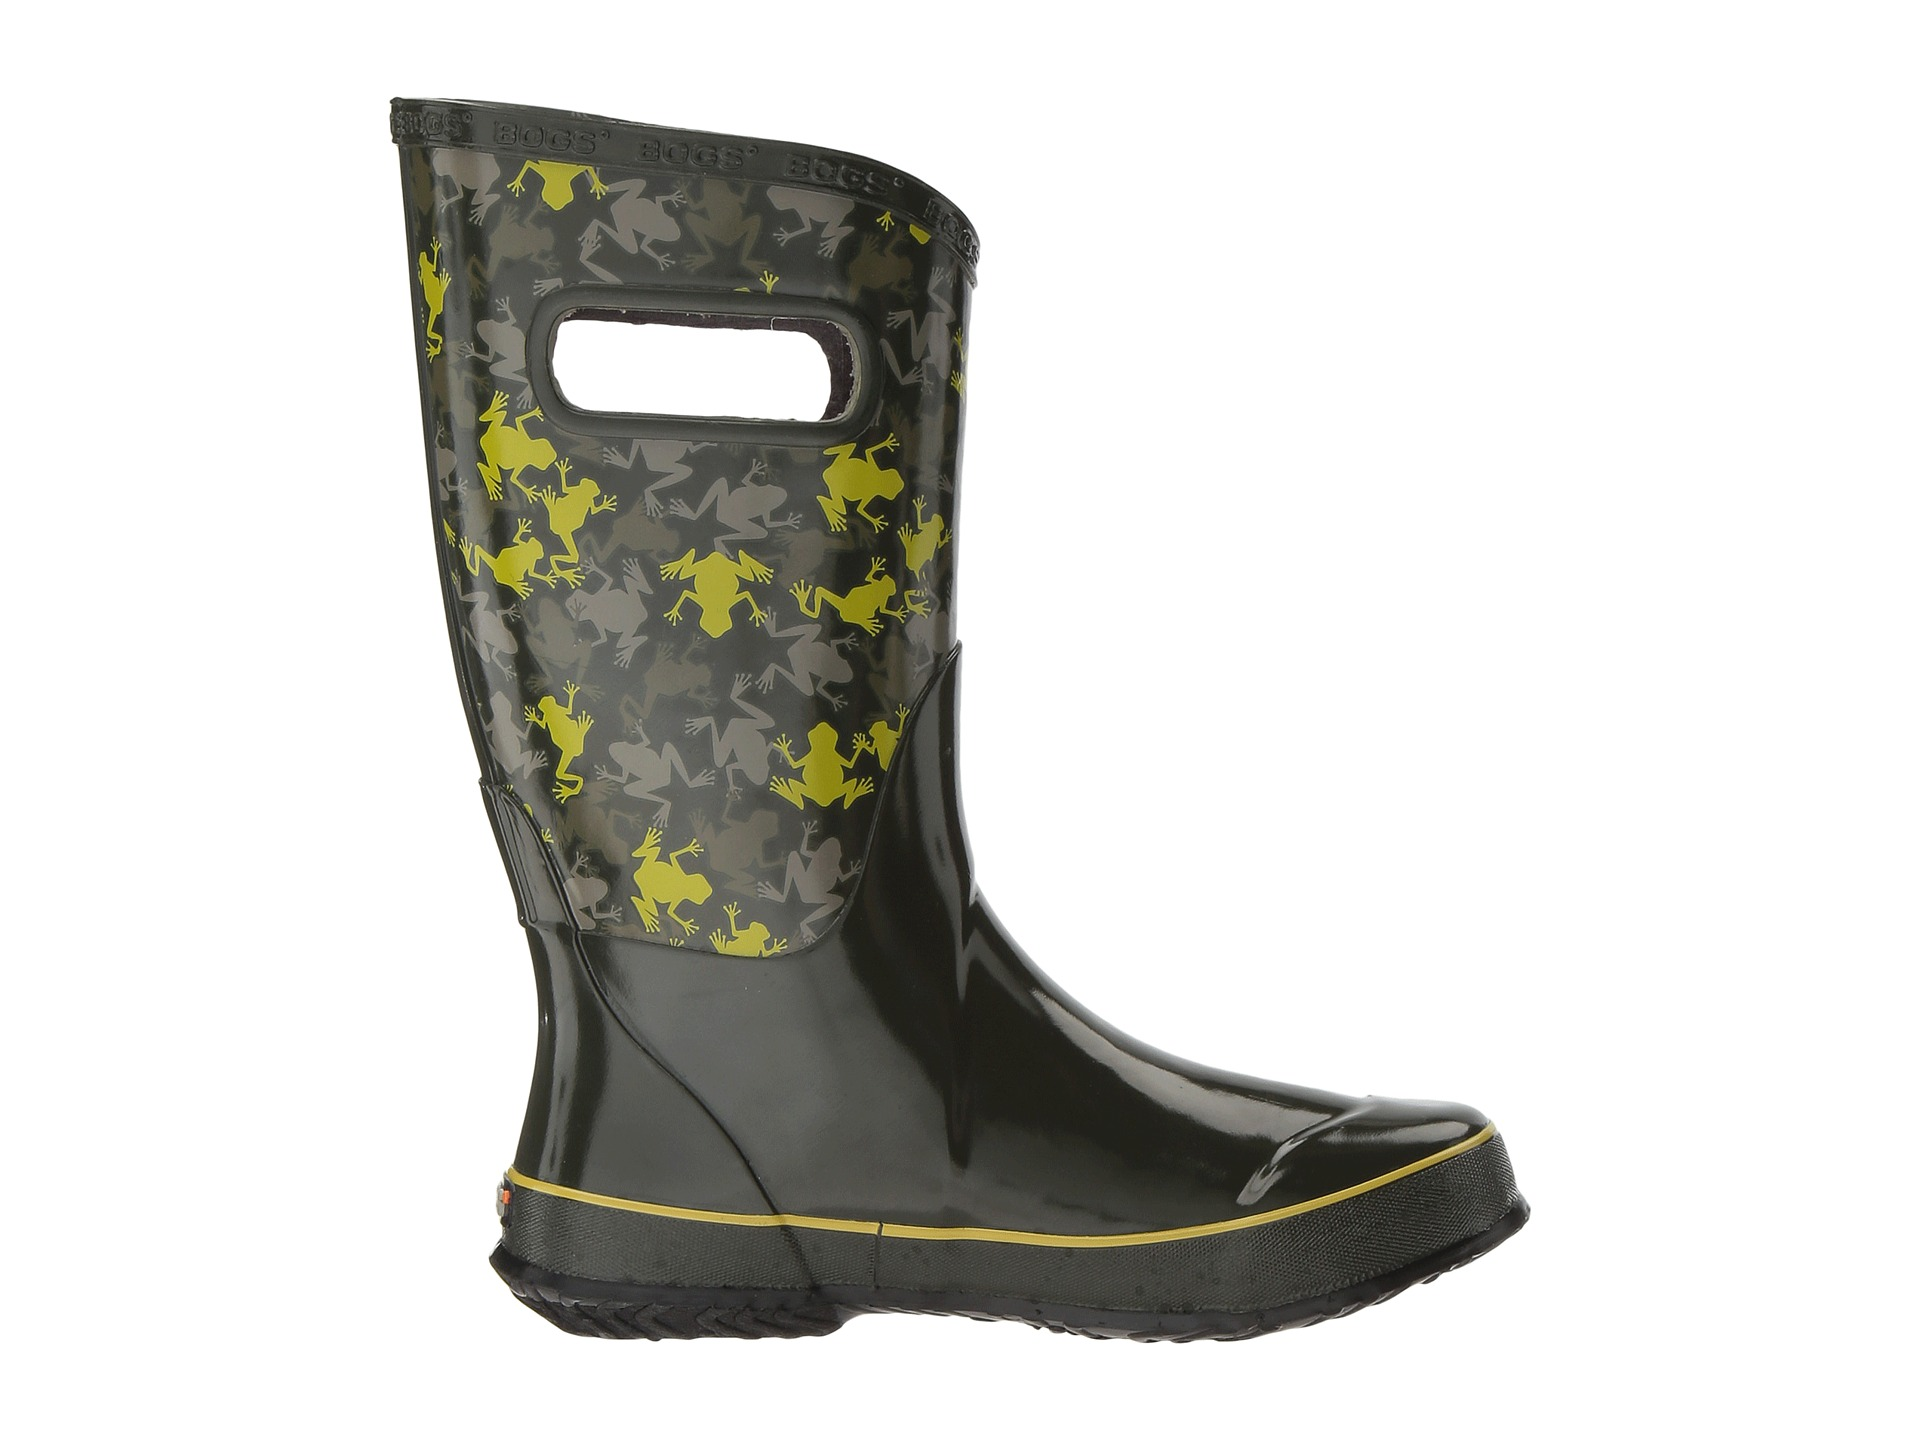 Bogs Kids Frogs Rain Boot (Toddler/Little Kid/Big Kid) - Zappos ...